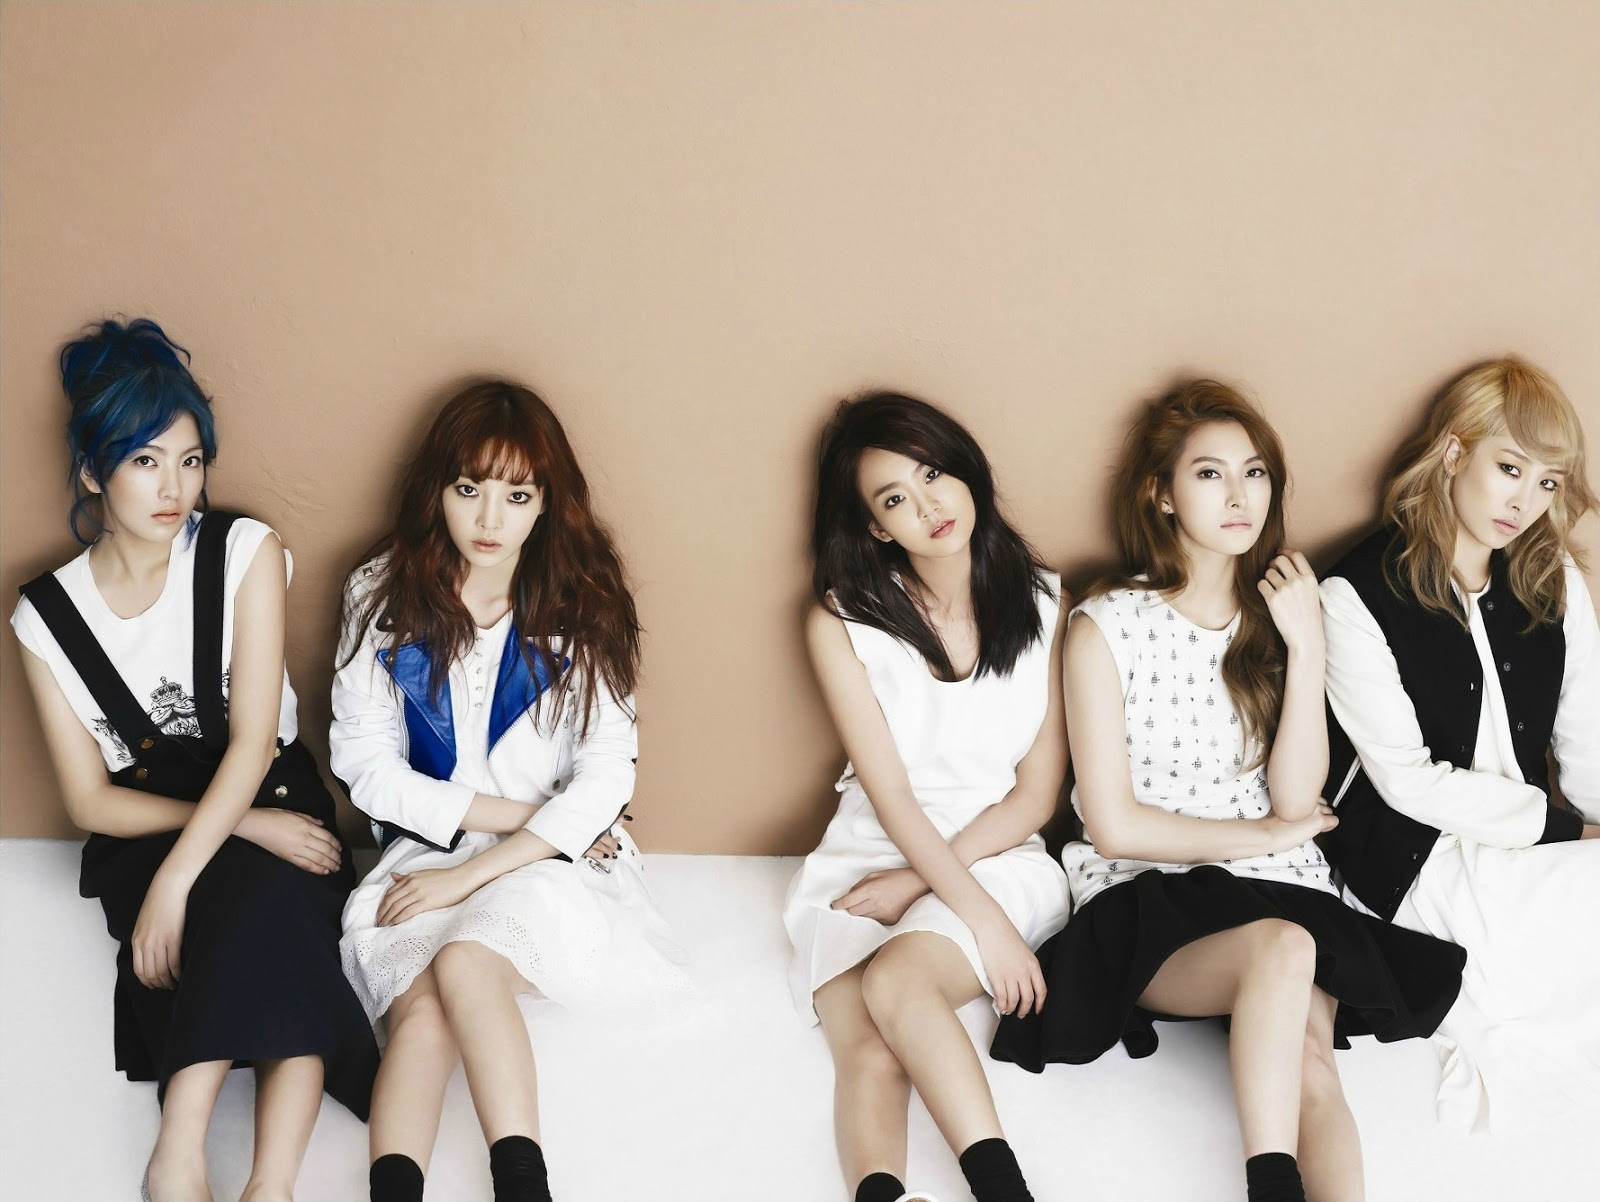 Dream Girl Wallpaper Hd Video Are The New Members Audtioning For Kara Up To